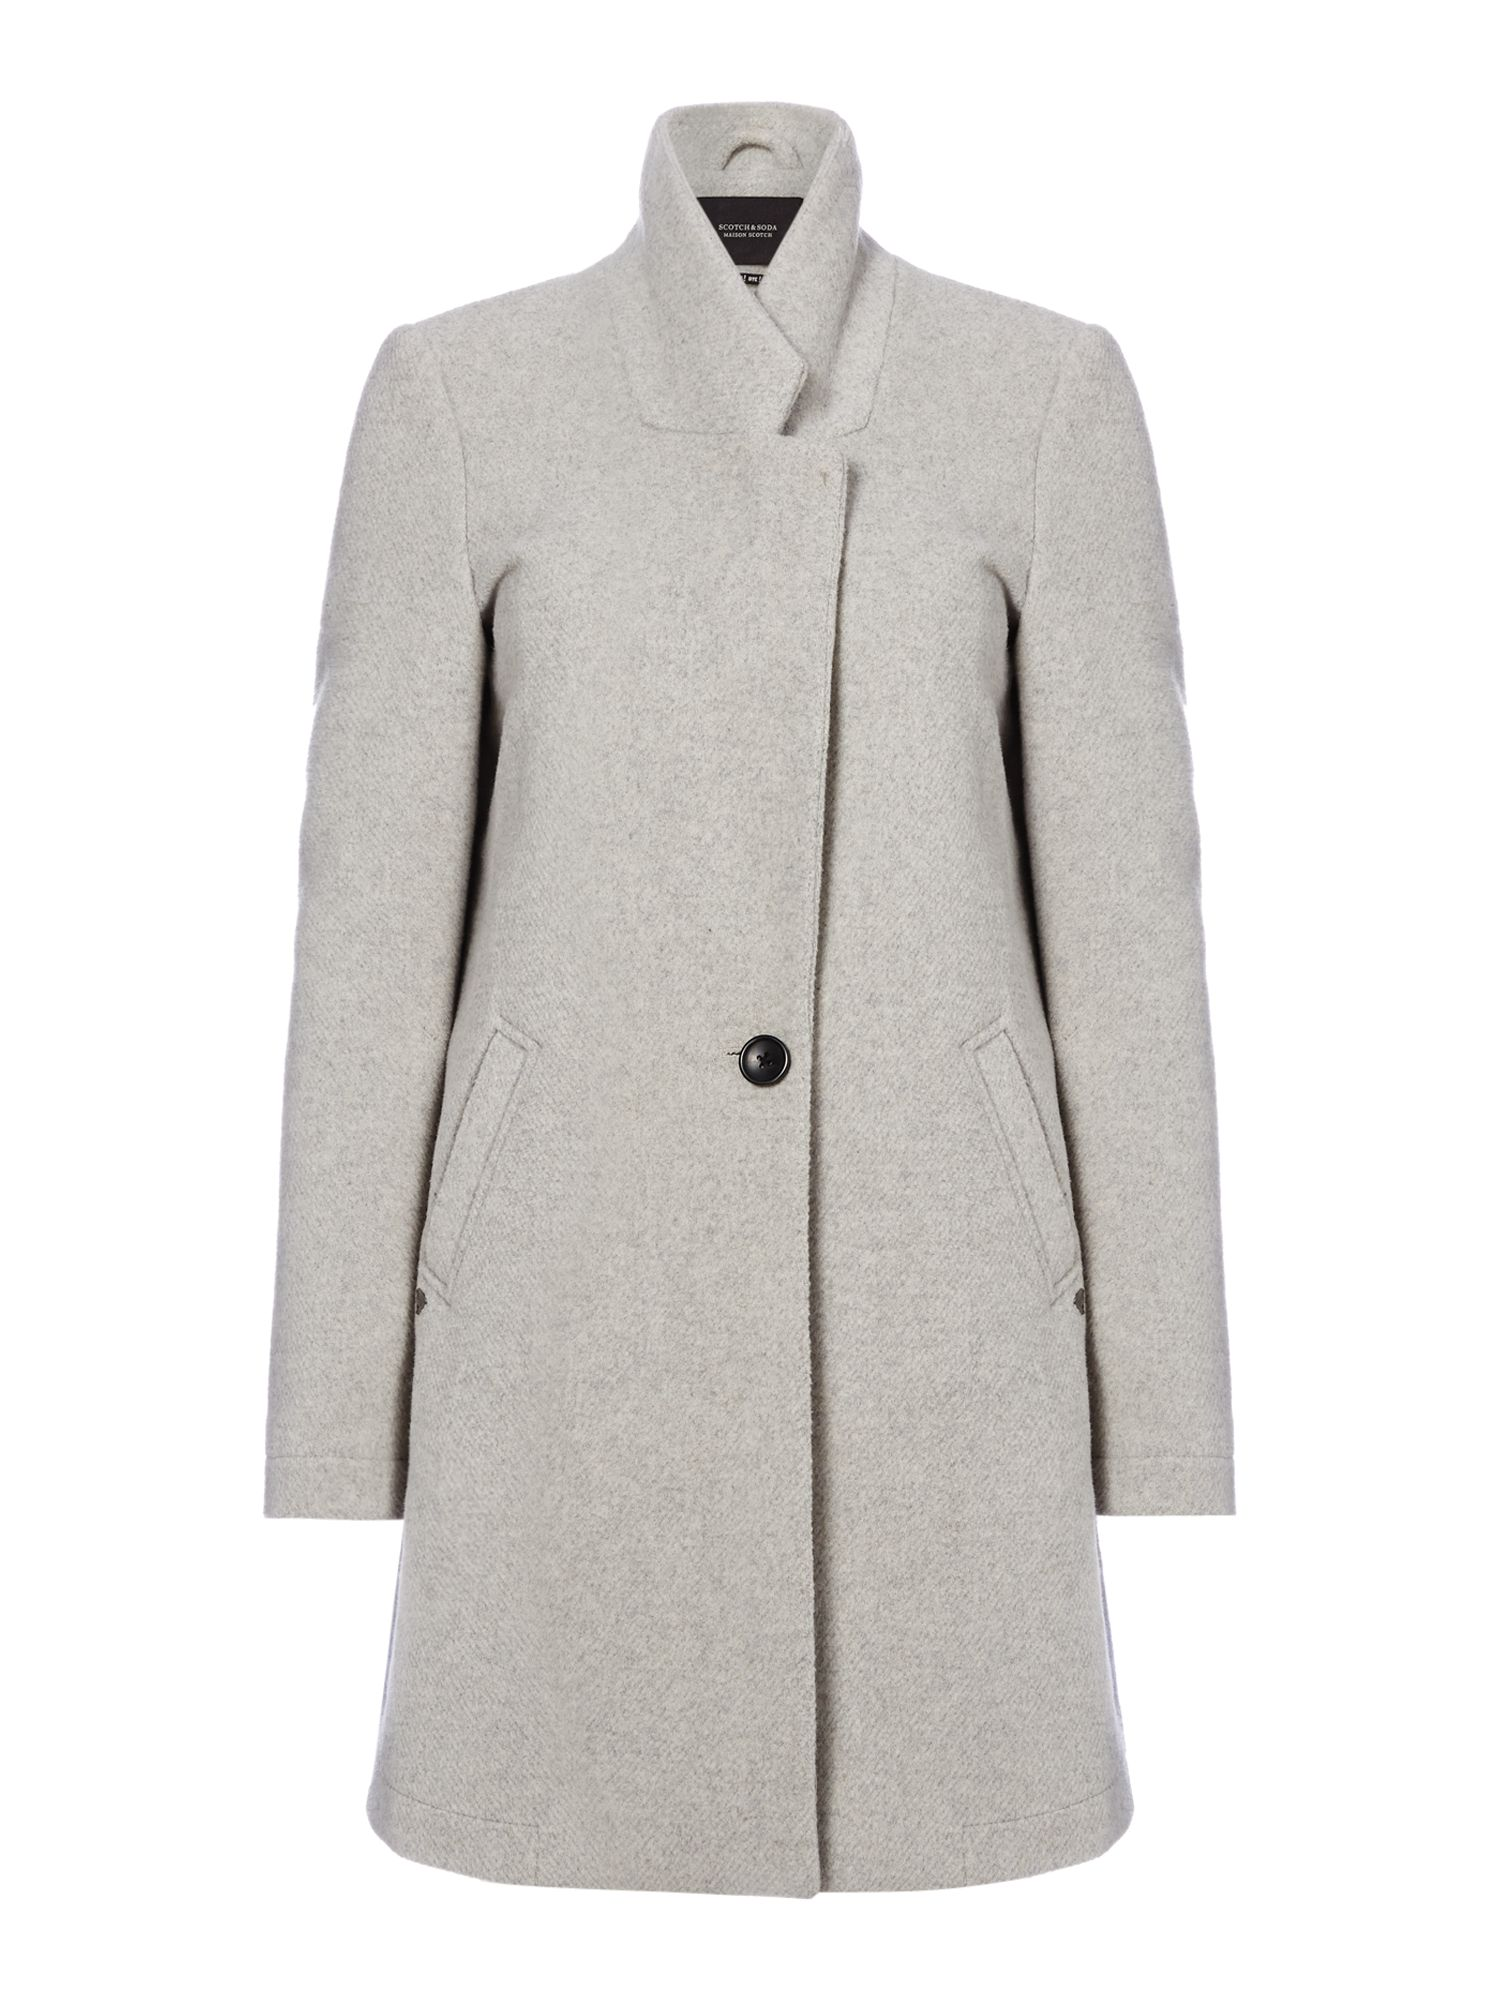 Maison Scotch Bonded Wool Coat, Grey